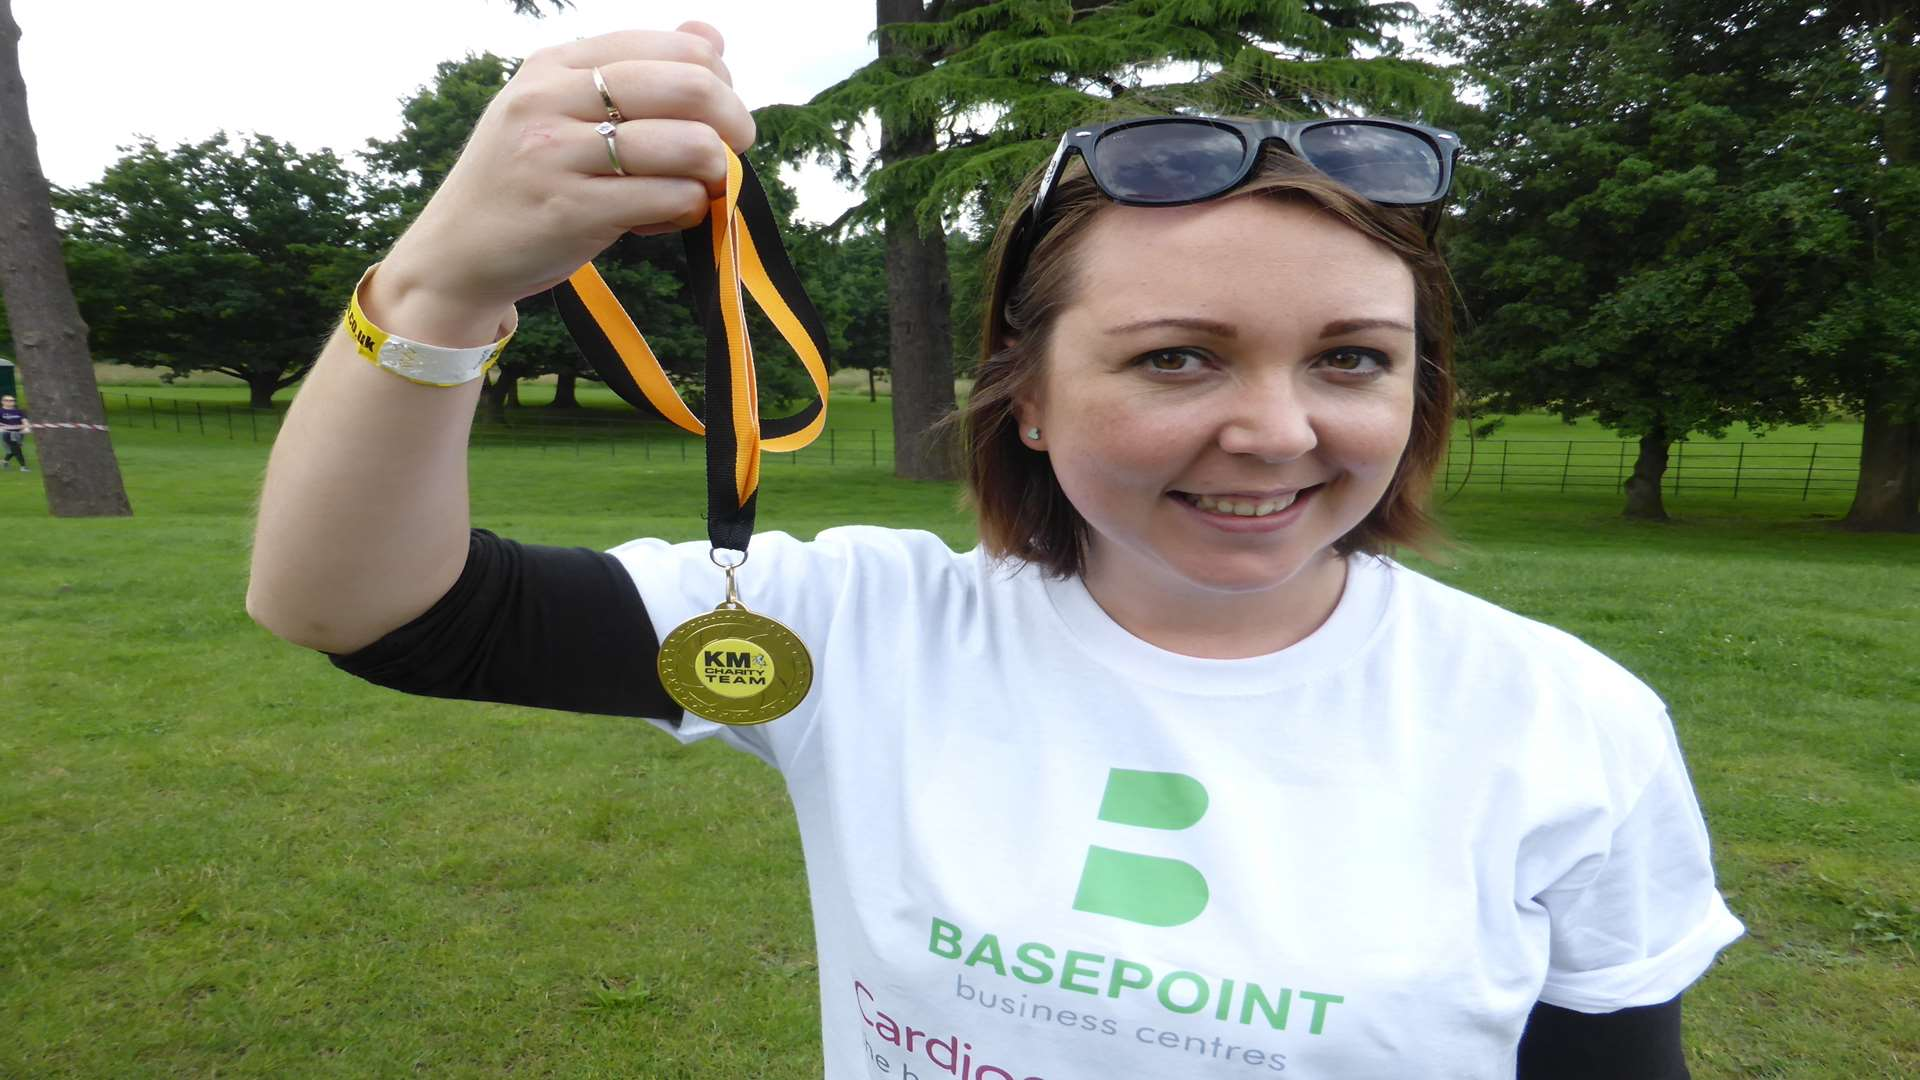 Kirsty Gordon-Thomas was the highest fundraiser on the day raising more than £1k for Cardiomyopathy UK.